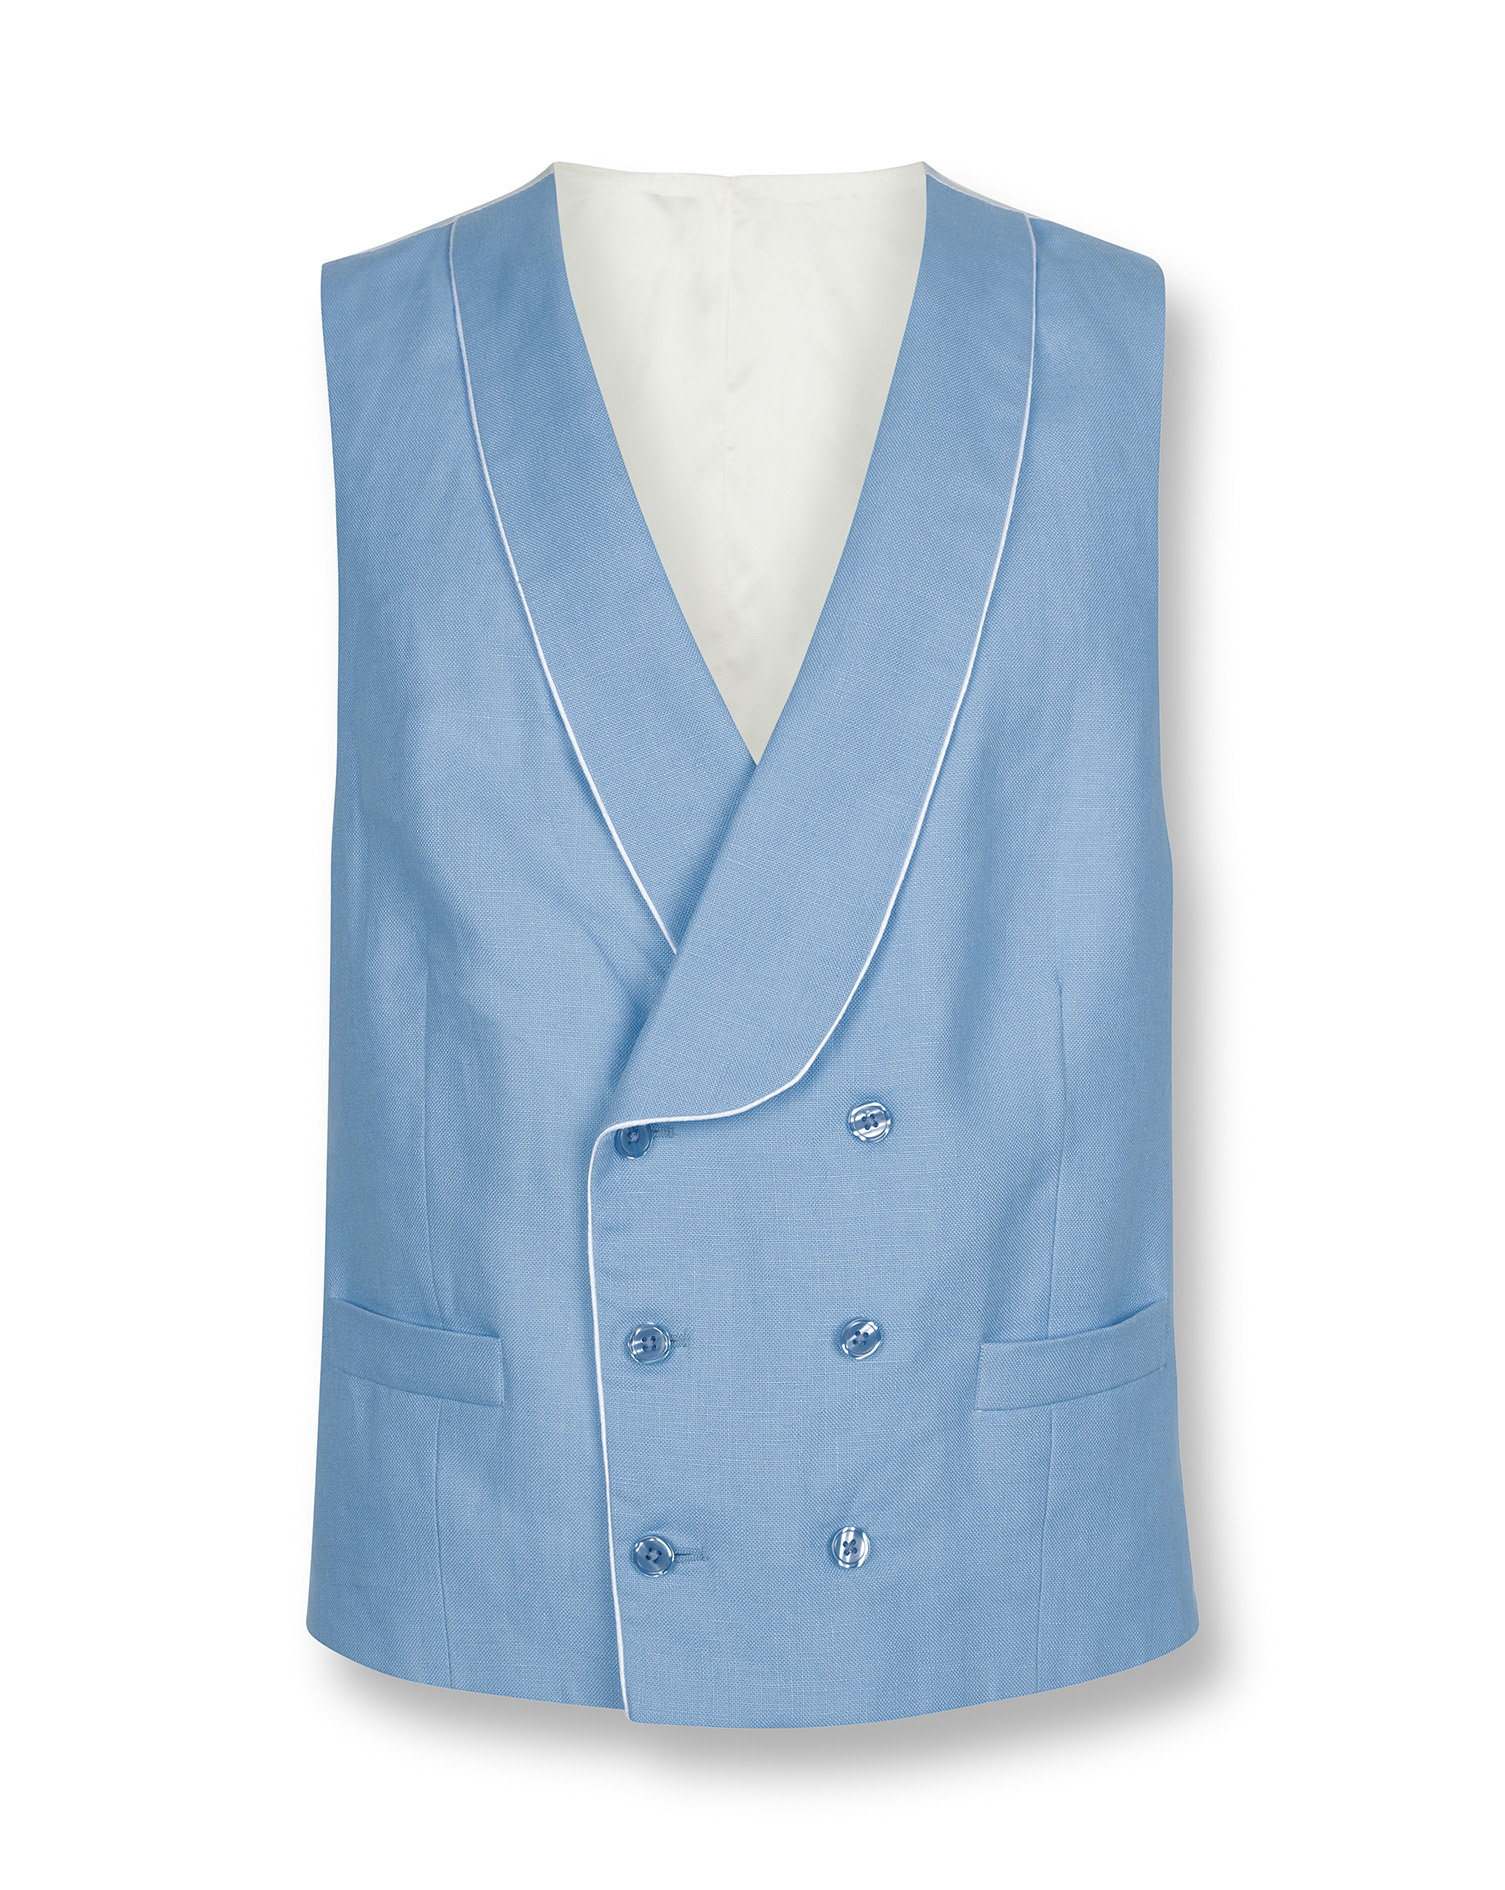 Blue Adjustable Fit Morning Suit Waistcoat Size w46 by Charles Tyrwhitt